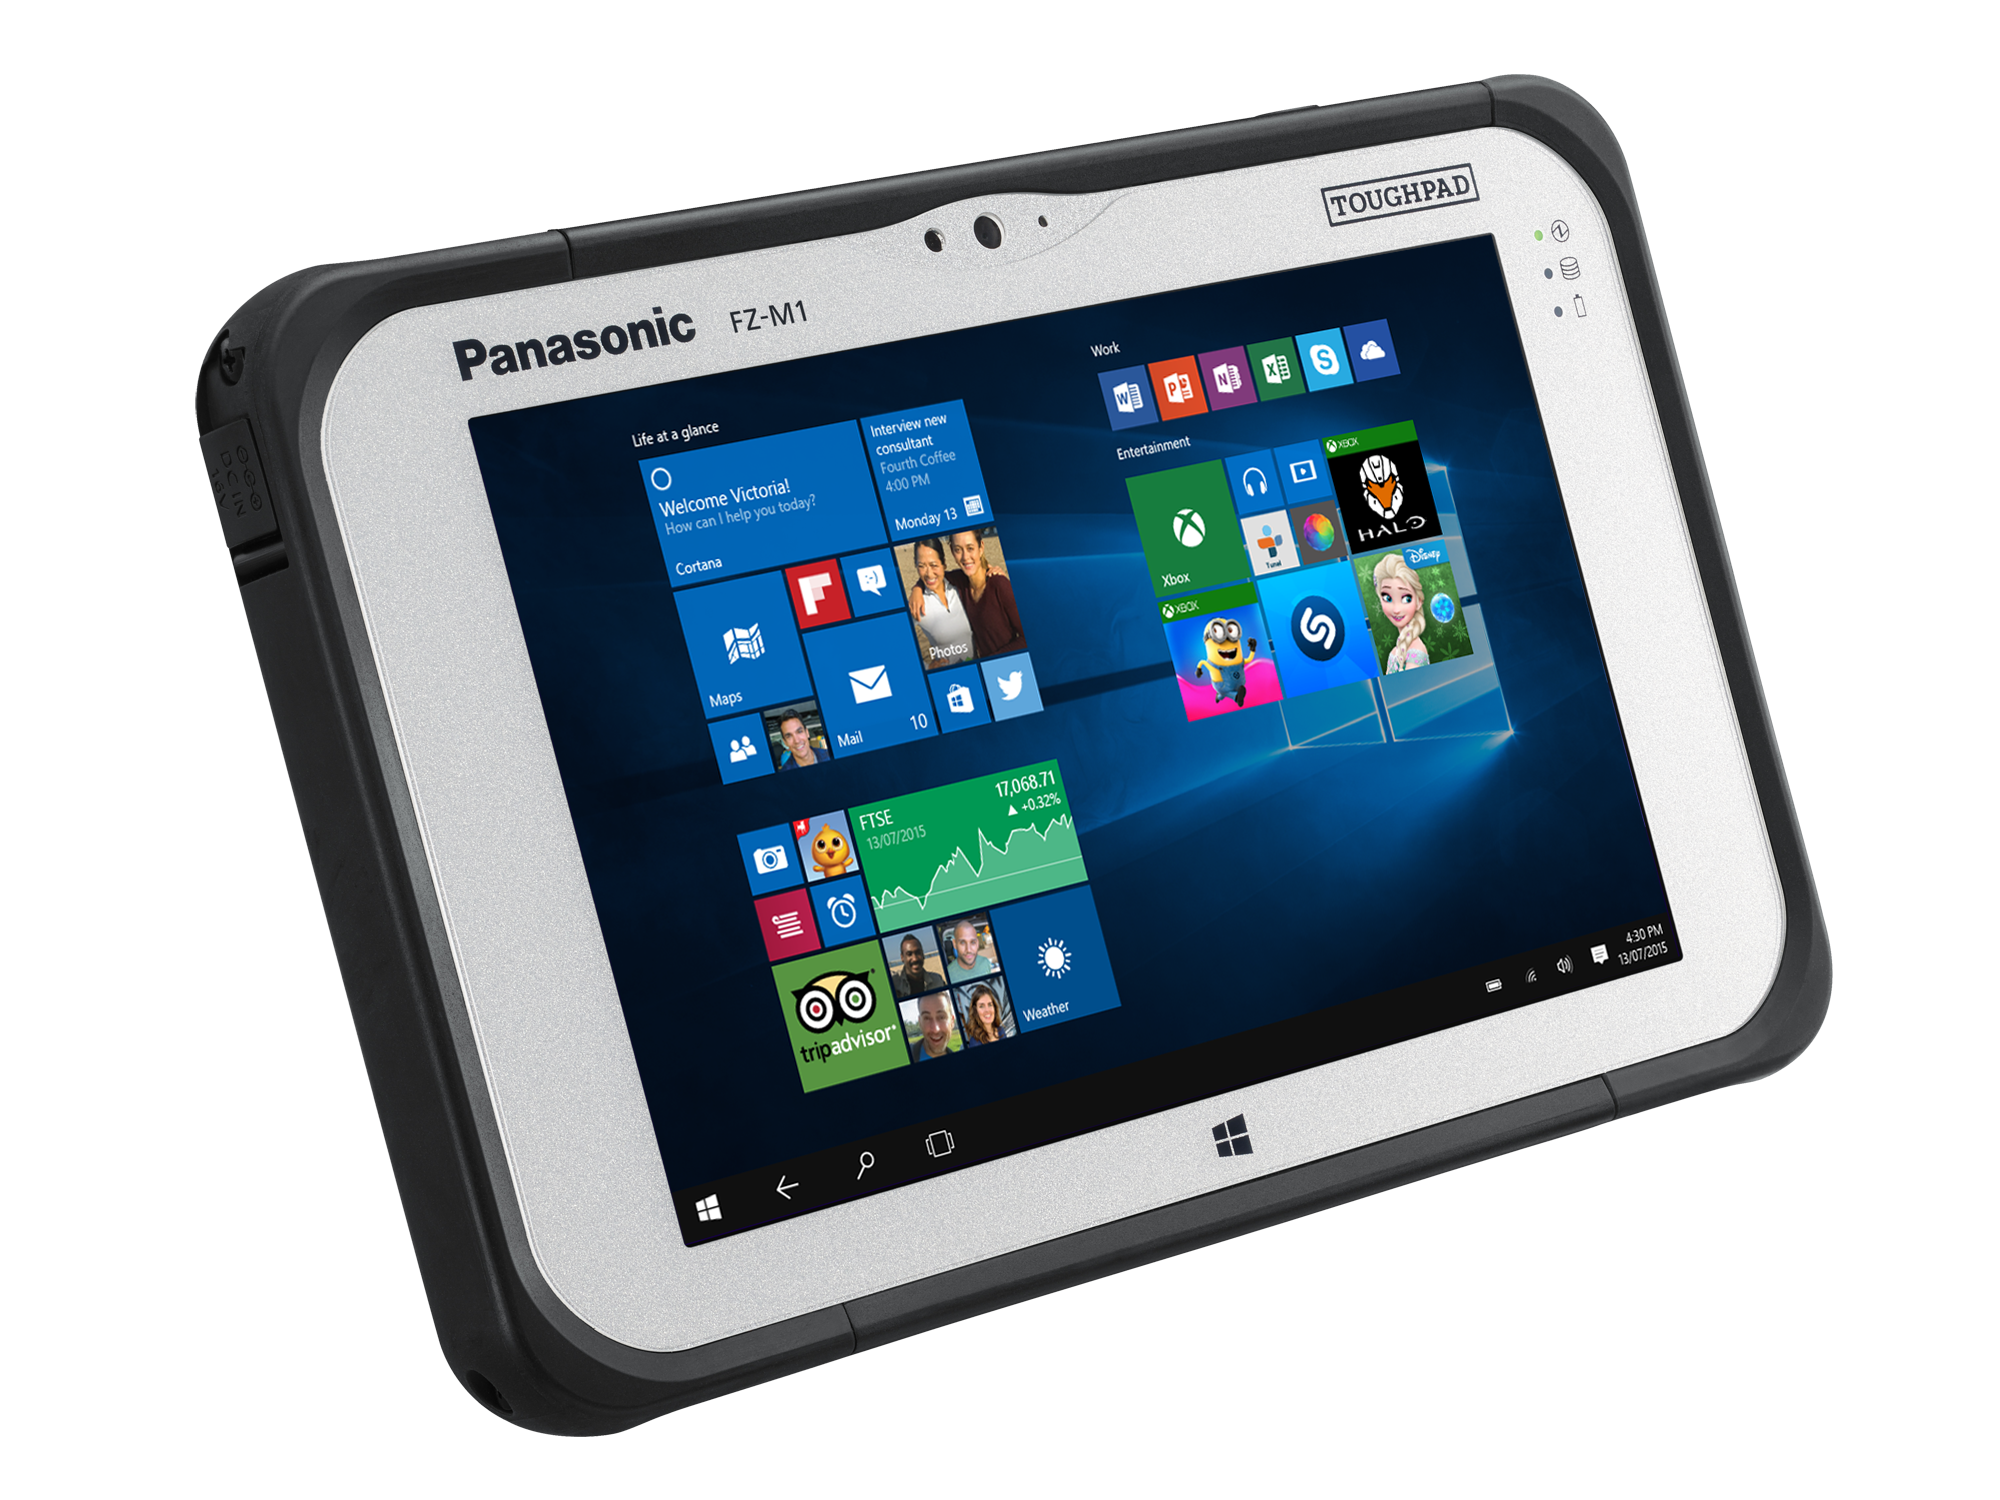 Fz M1 Computer Product Solutions Panasonic Business